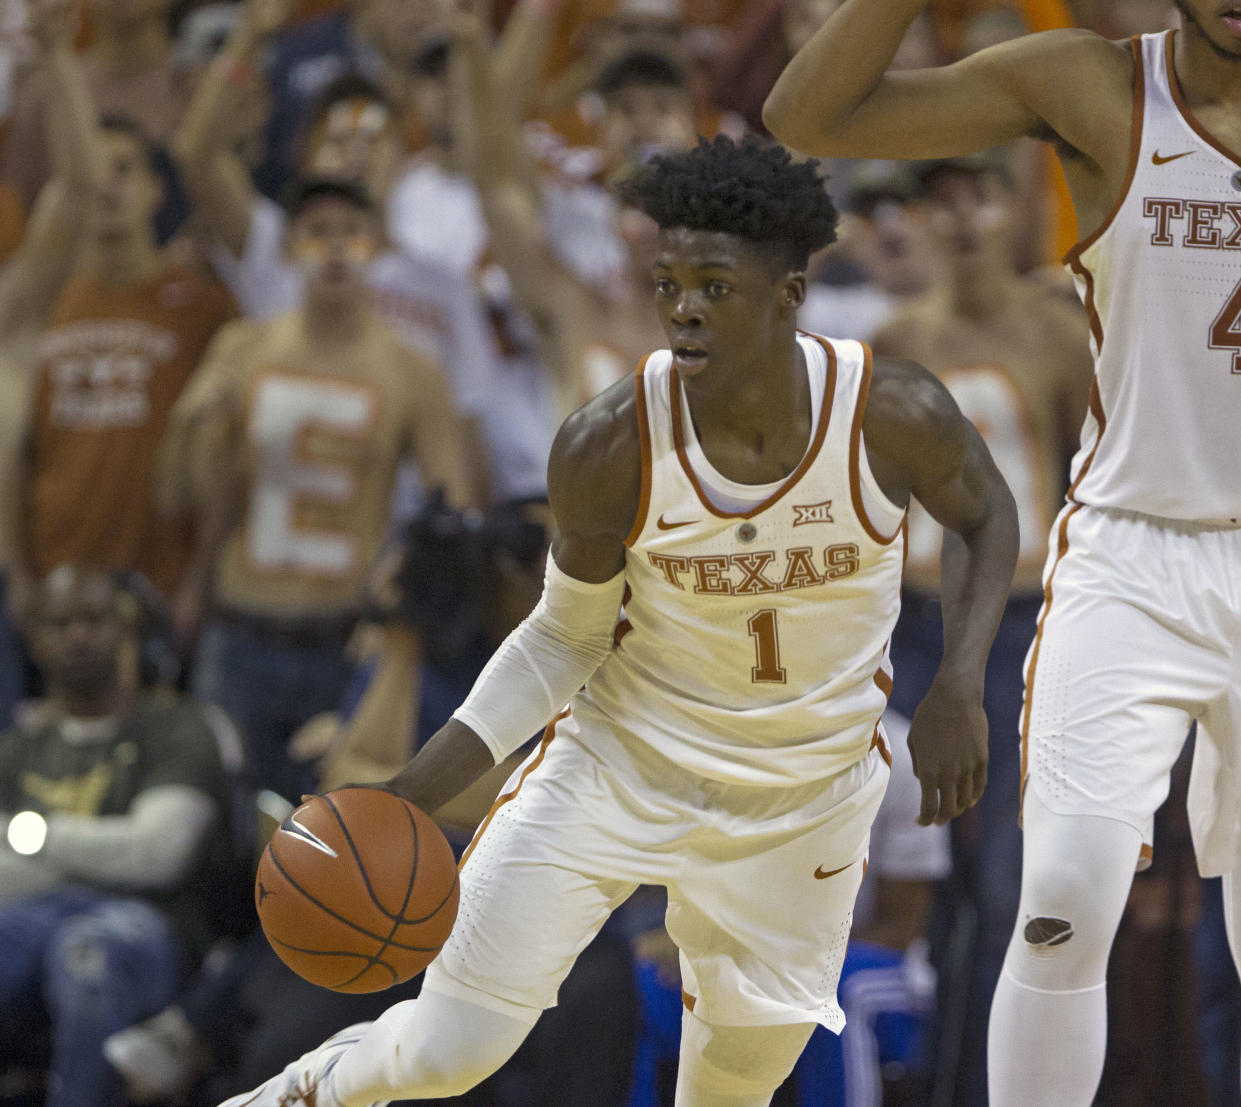 """The University of Texas is asking for donations to help <a class=""""link rapid-noclick-resp"""" href=""""/ncaaf/players/242084/"""" data-ylk=""""slk:Andrew Jones"""">Andrew Jones</a> and his family pay for leukemia treatments. (AP Photo/Michael Thomas)"""